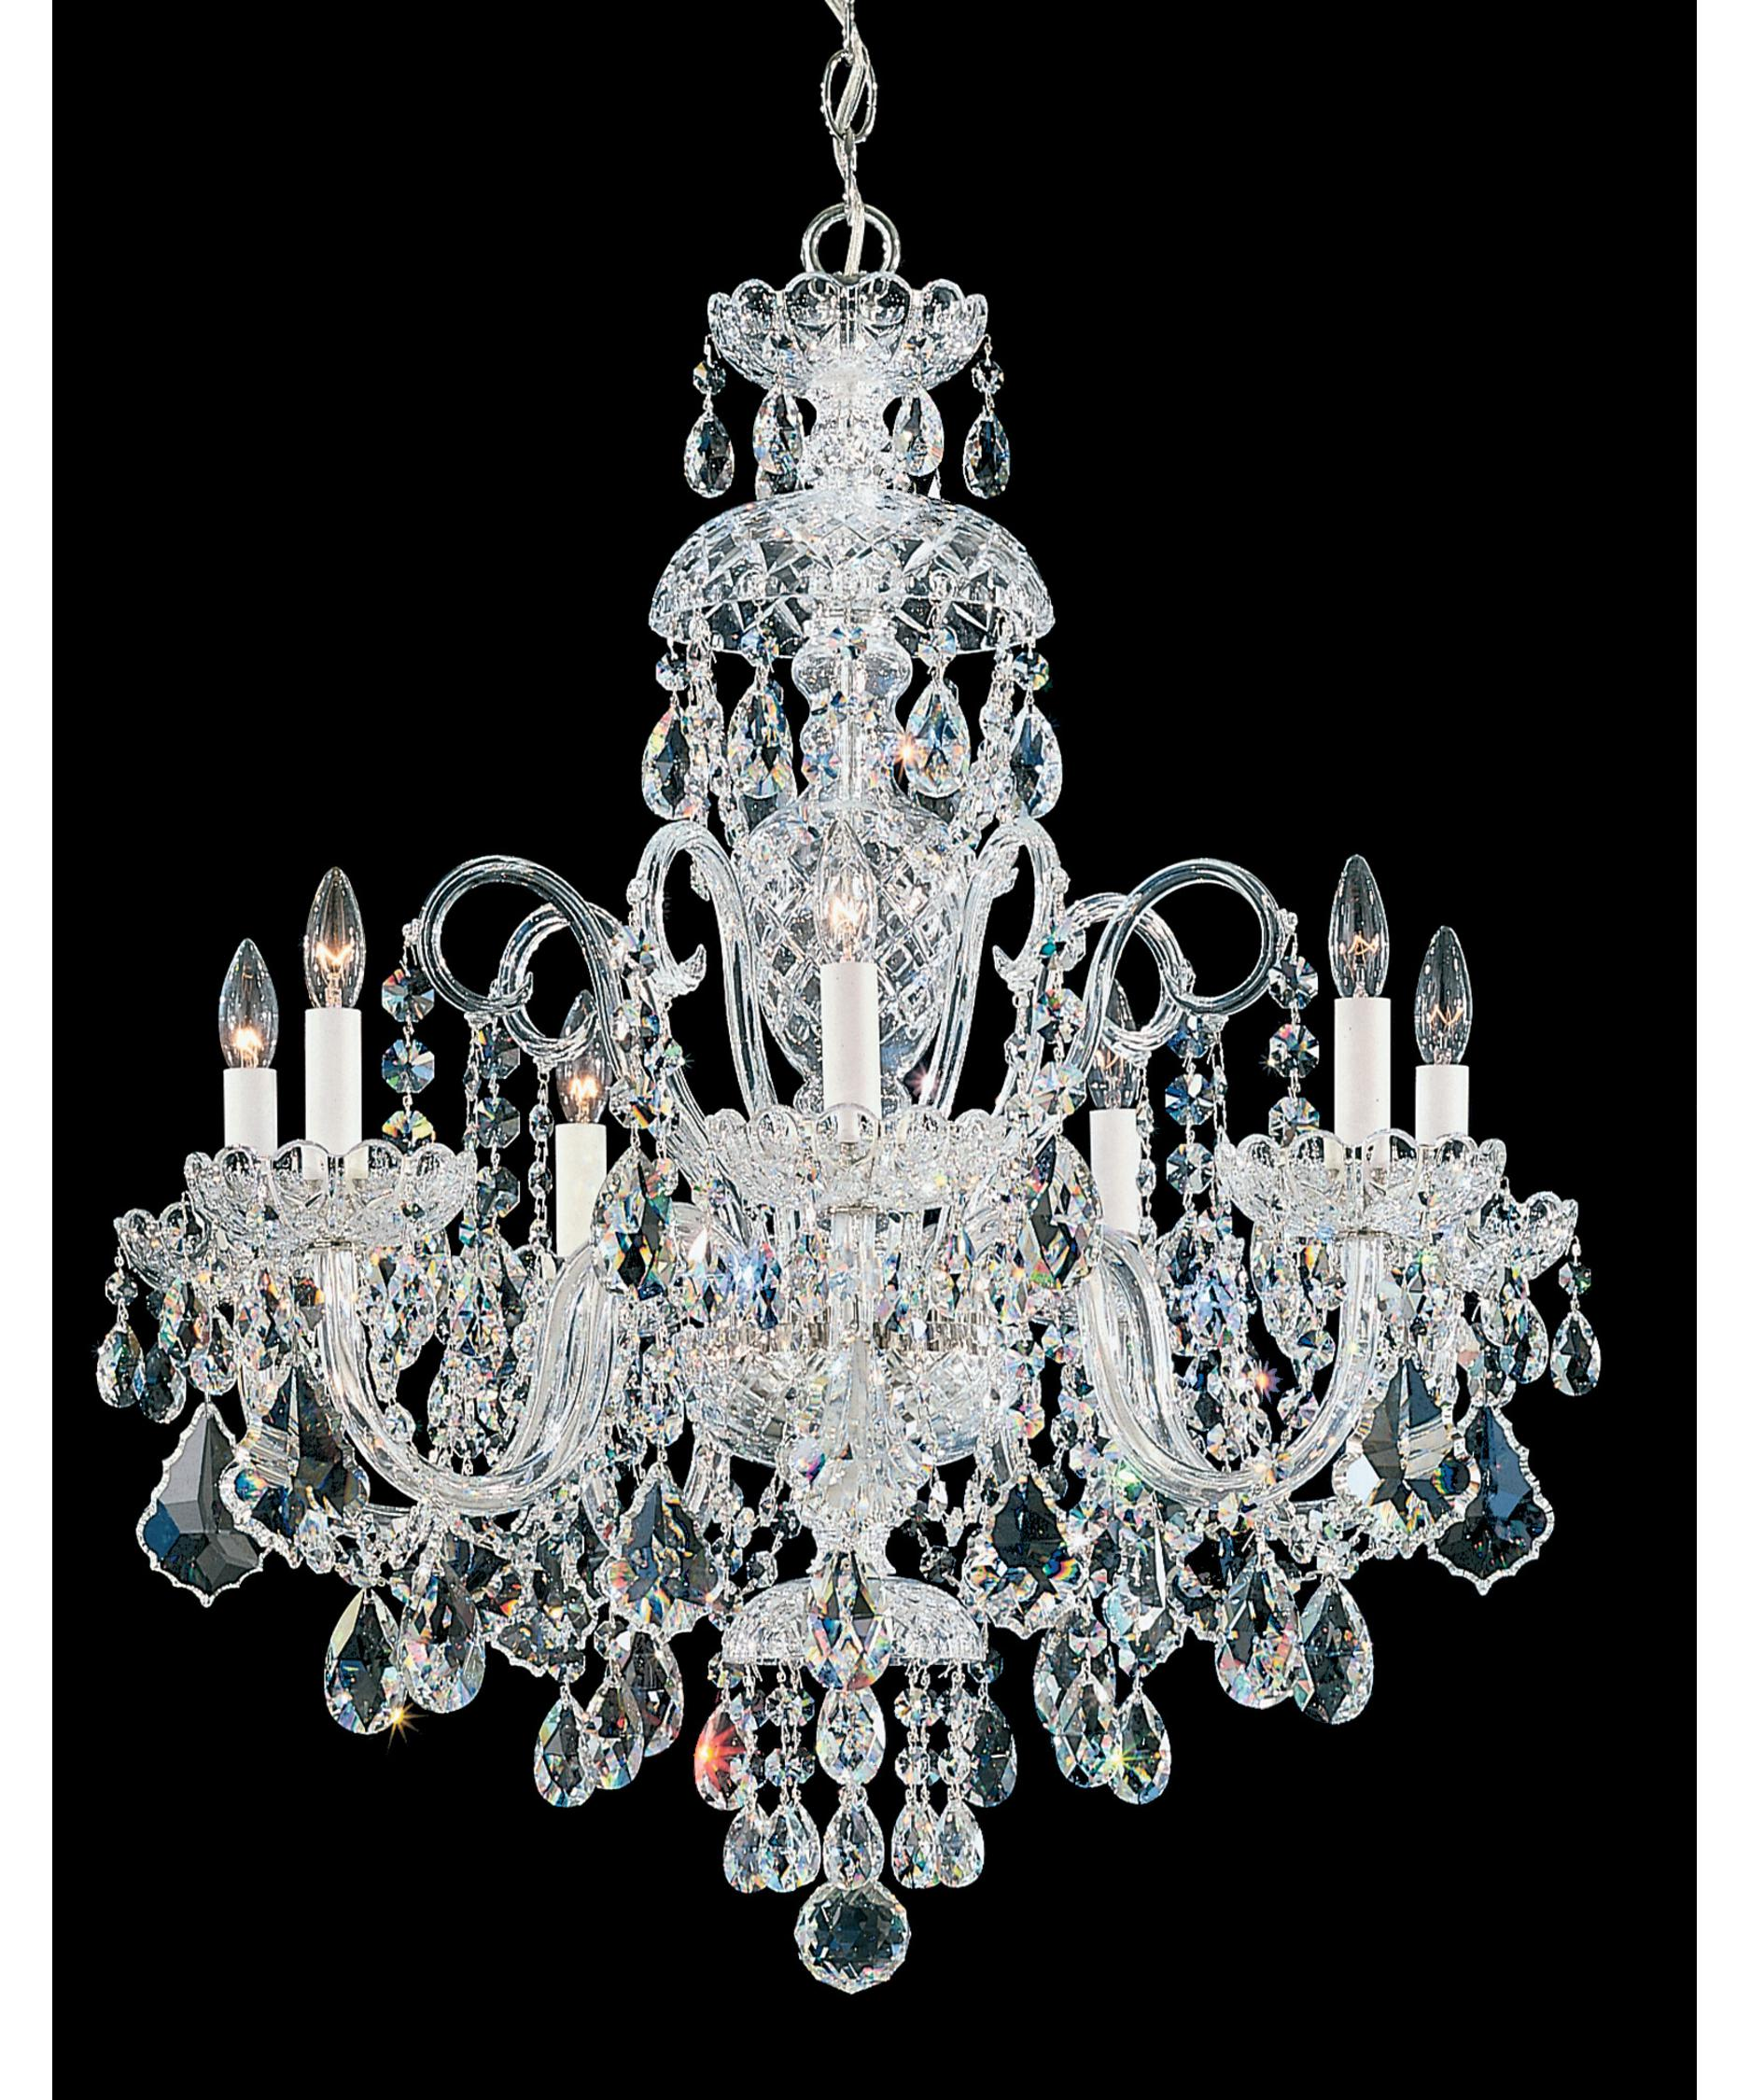 shown in silver finish and clear swarovski elements crystal - Schonbek Chandelier